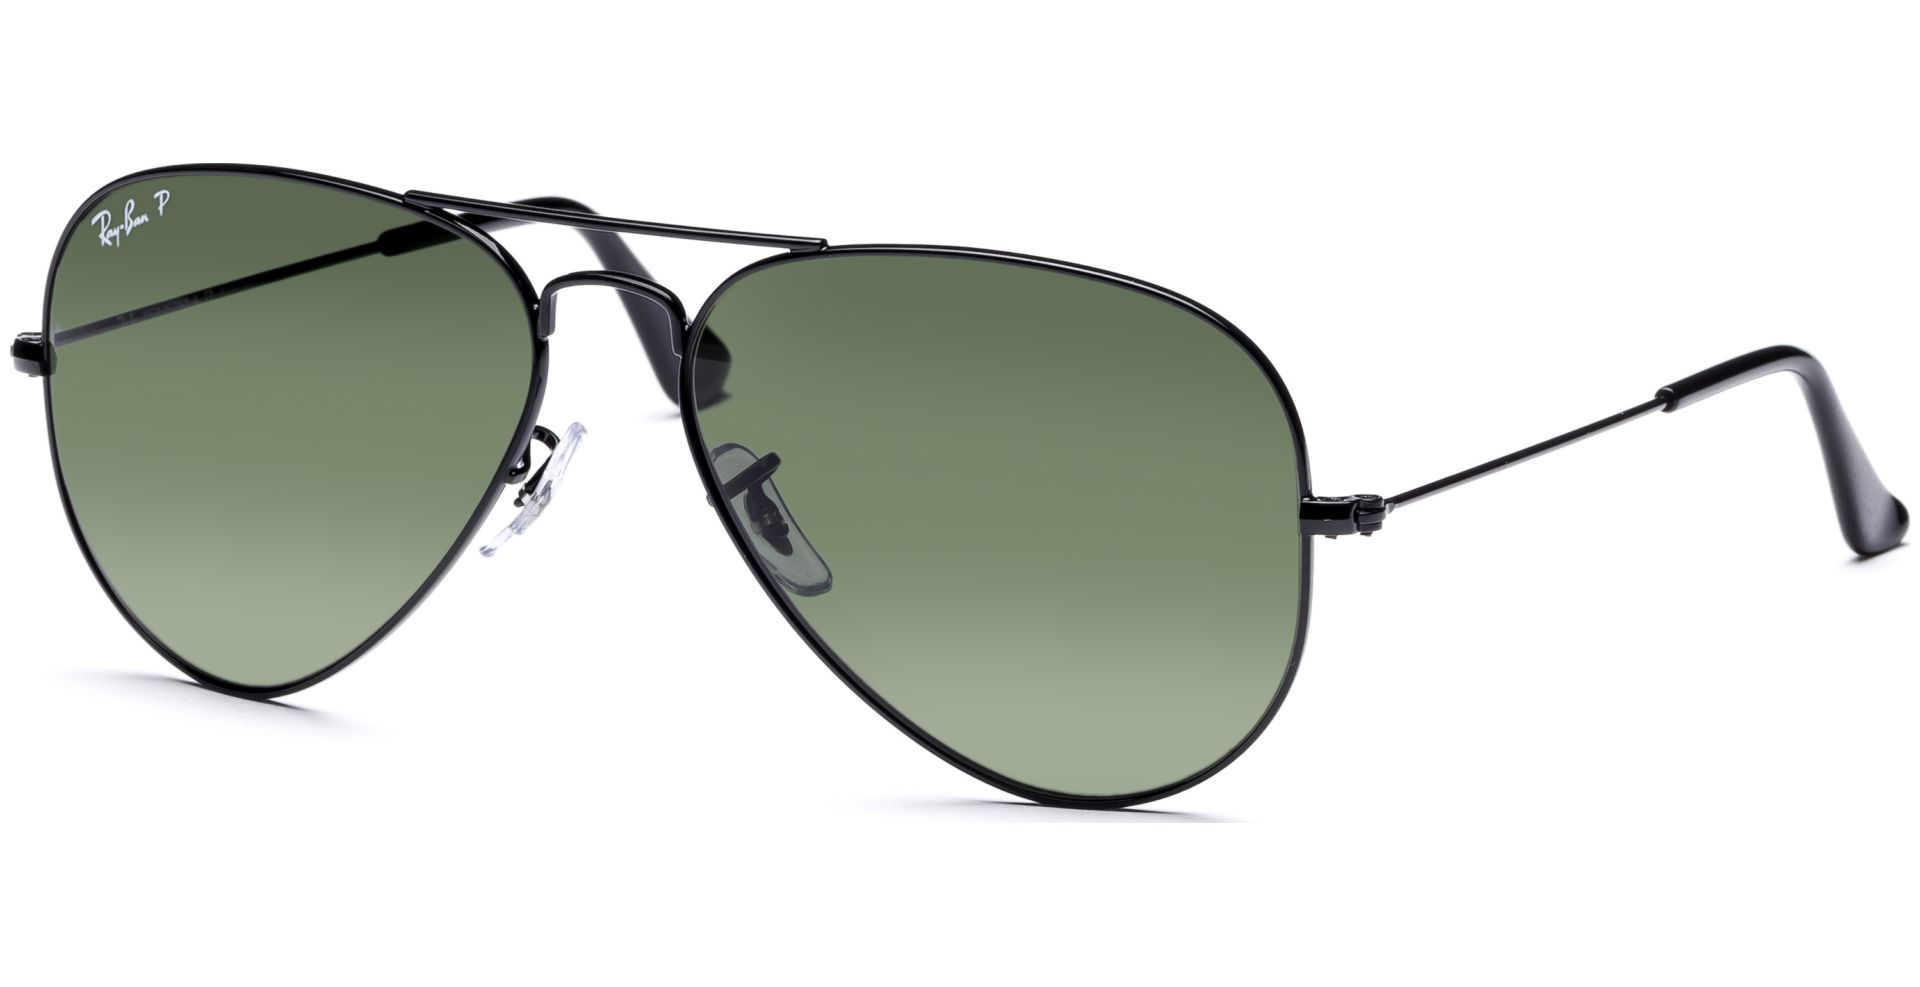 7d9c5019d358ca Ray-Ban - Aviator Metal Medium 3025 002 58 5814 Black Crystal Green ...